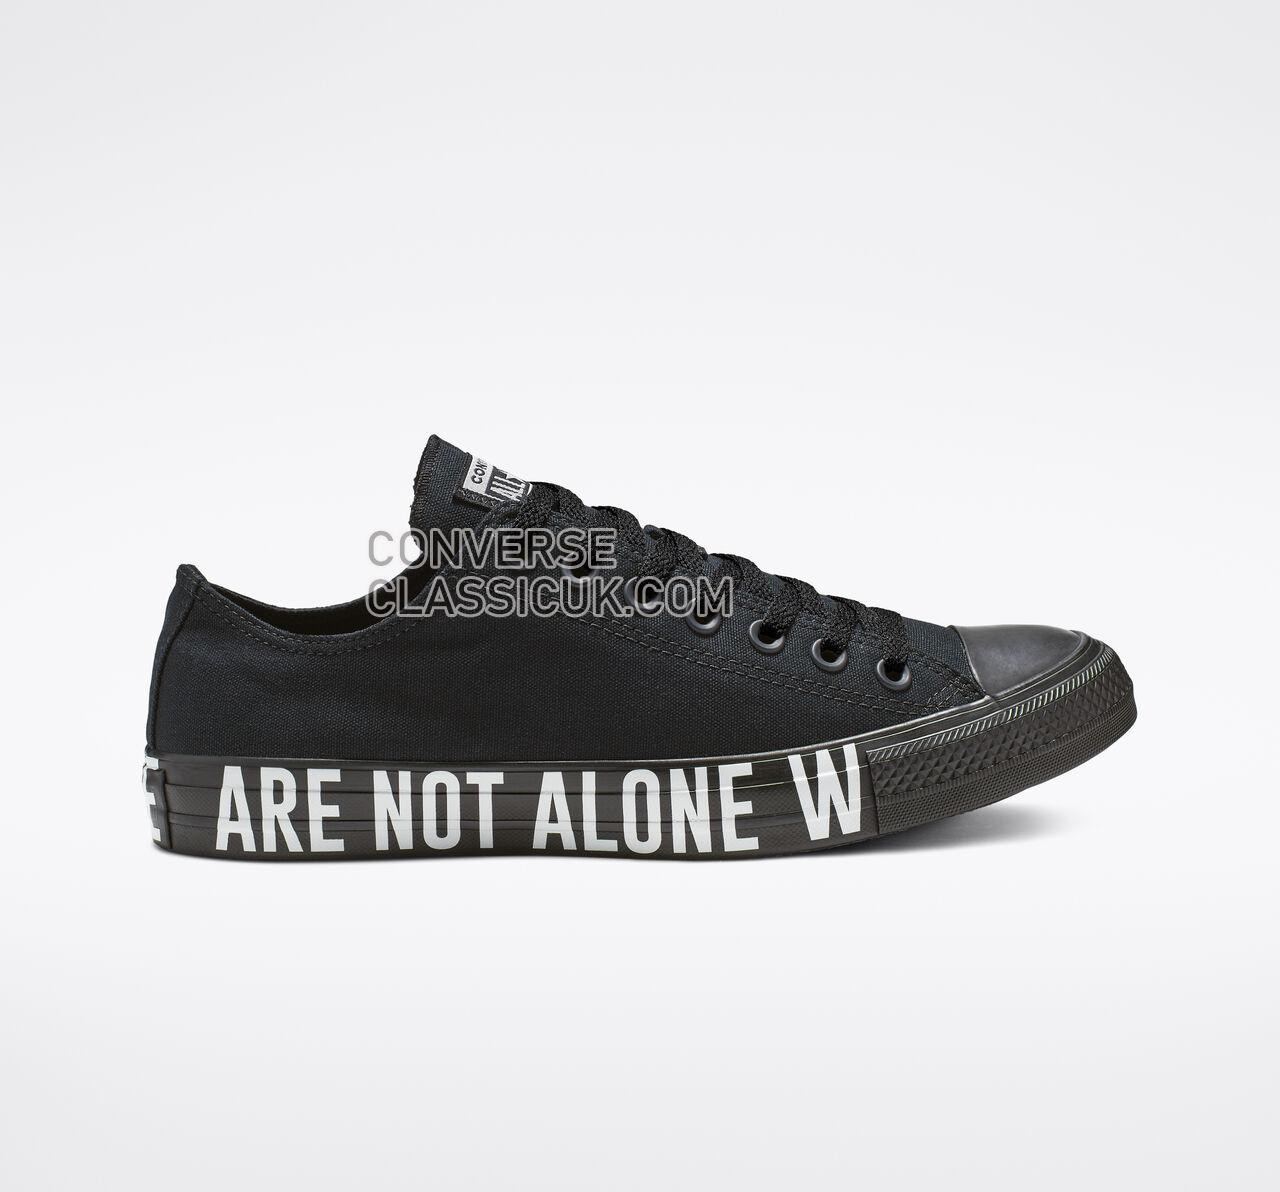 Converse Chuck Taylor All Star We Are Not Alone Low Top Mens Womens Unisex 165382F Black/White/Black Shoes